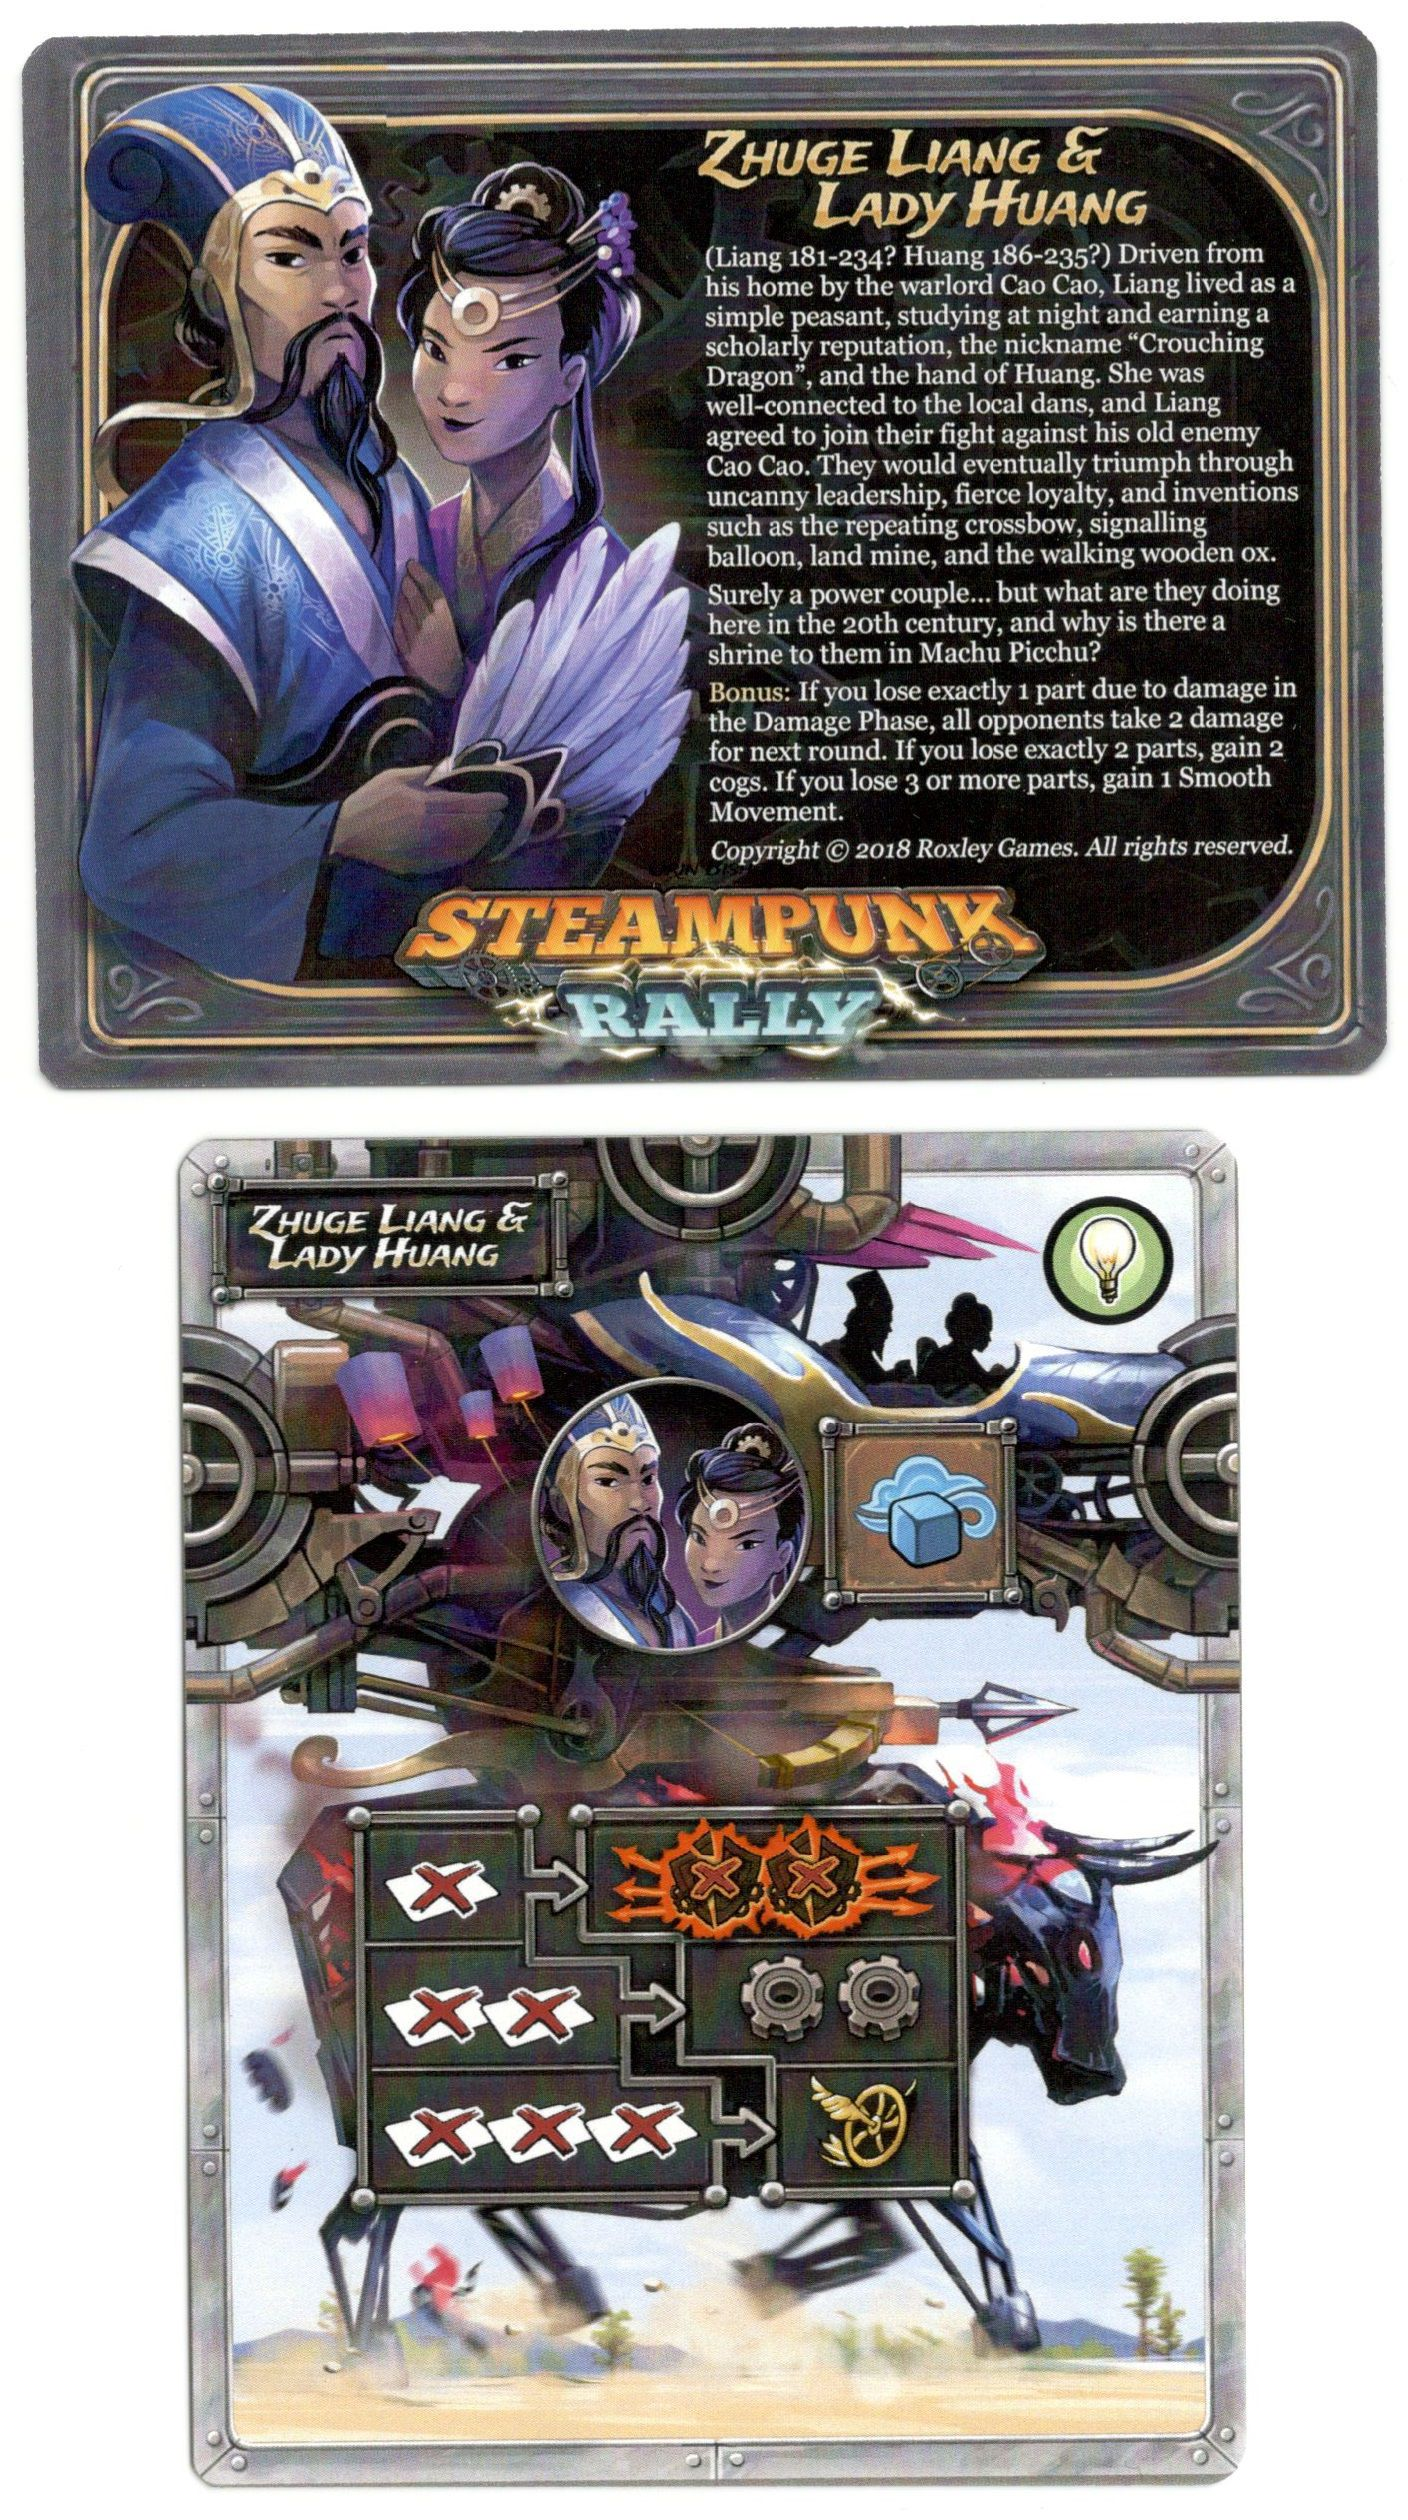 Steampunk Rally: Zhuge Liang & Lady Huang